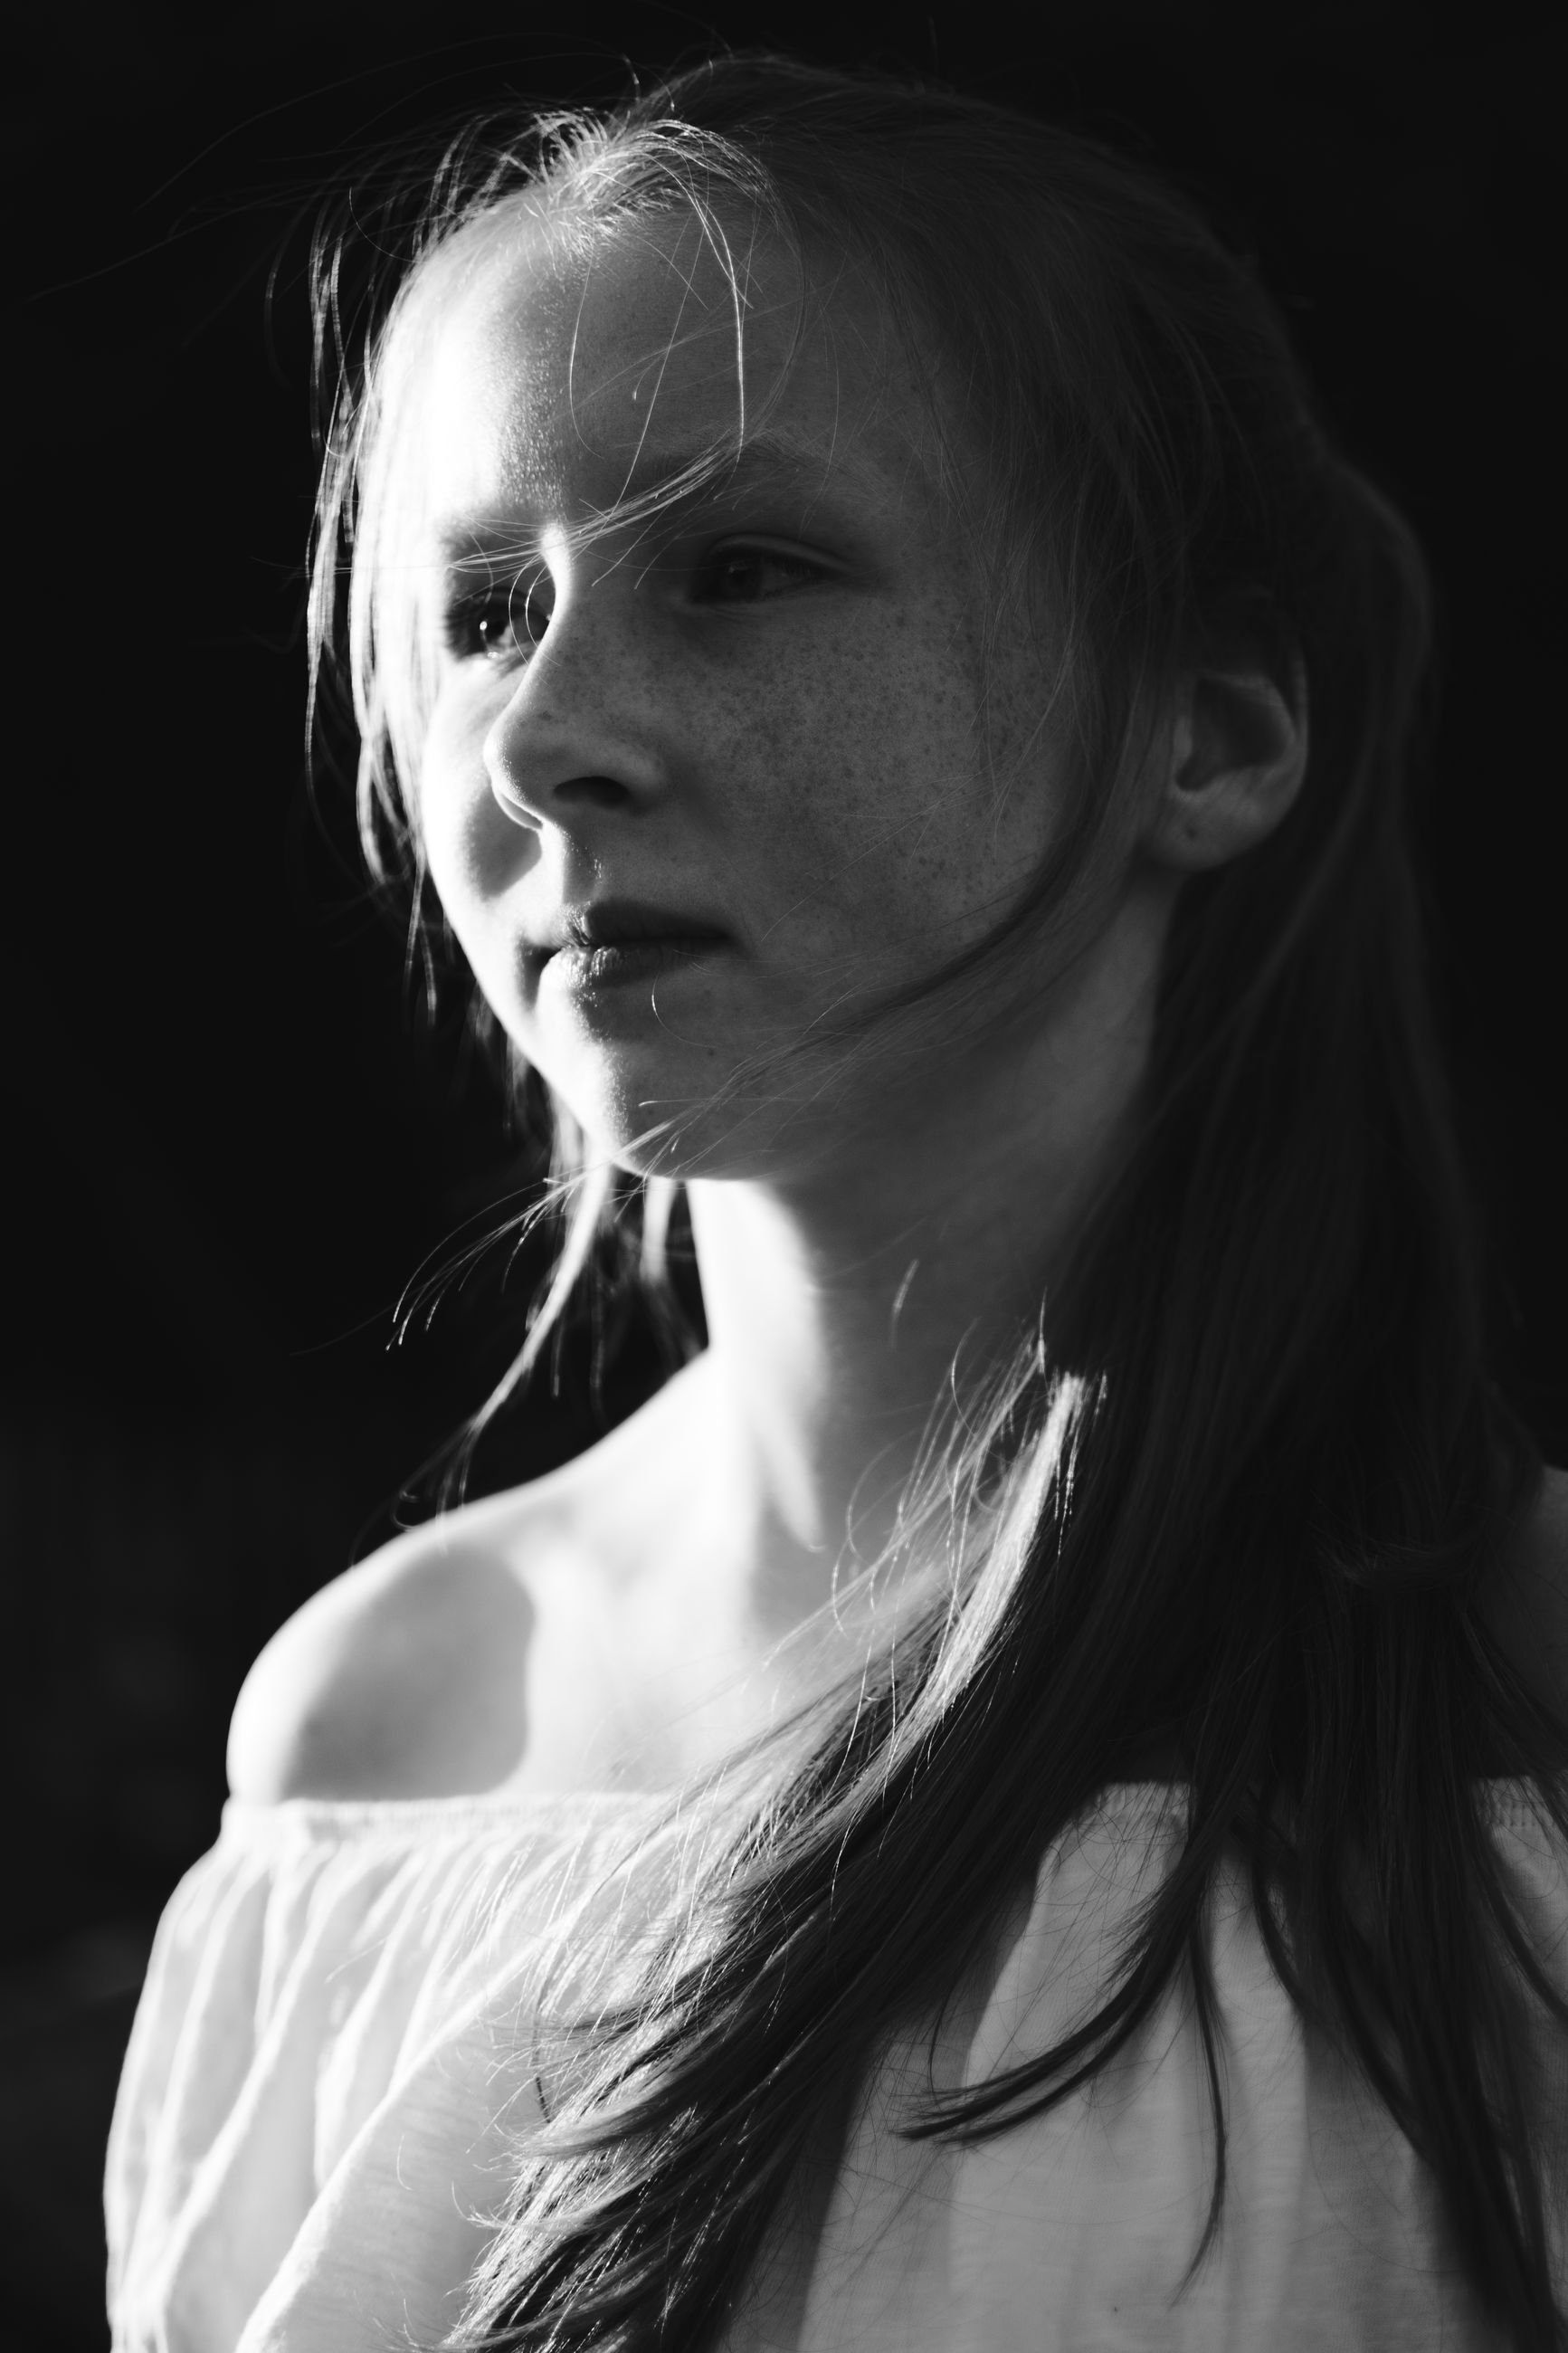 one person, headshot, young adult, lifestyles, young women, long hair, portrait, hair, close-up, women, hairstyle, real people, looking, looking away, leisure activity, black background, focus on foreground, adult, contemplation, teenager, beautiful woman